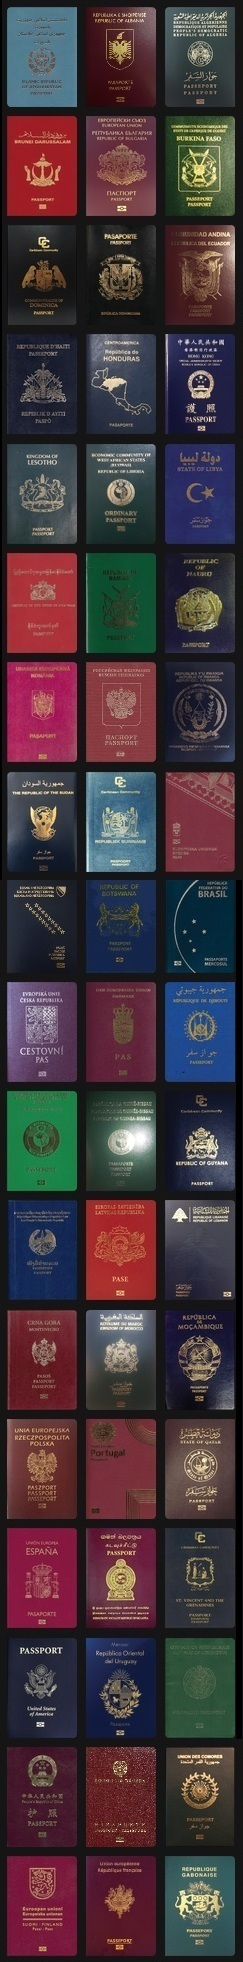 A set of passports of different countries.